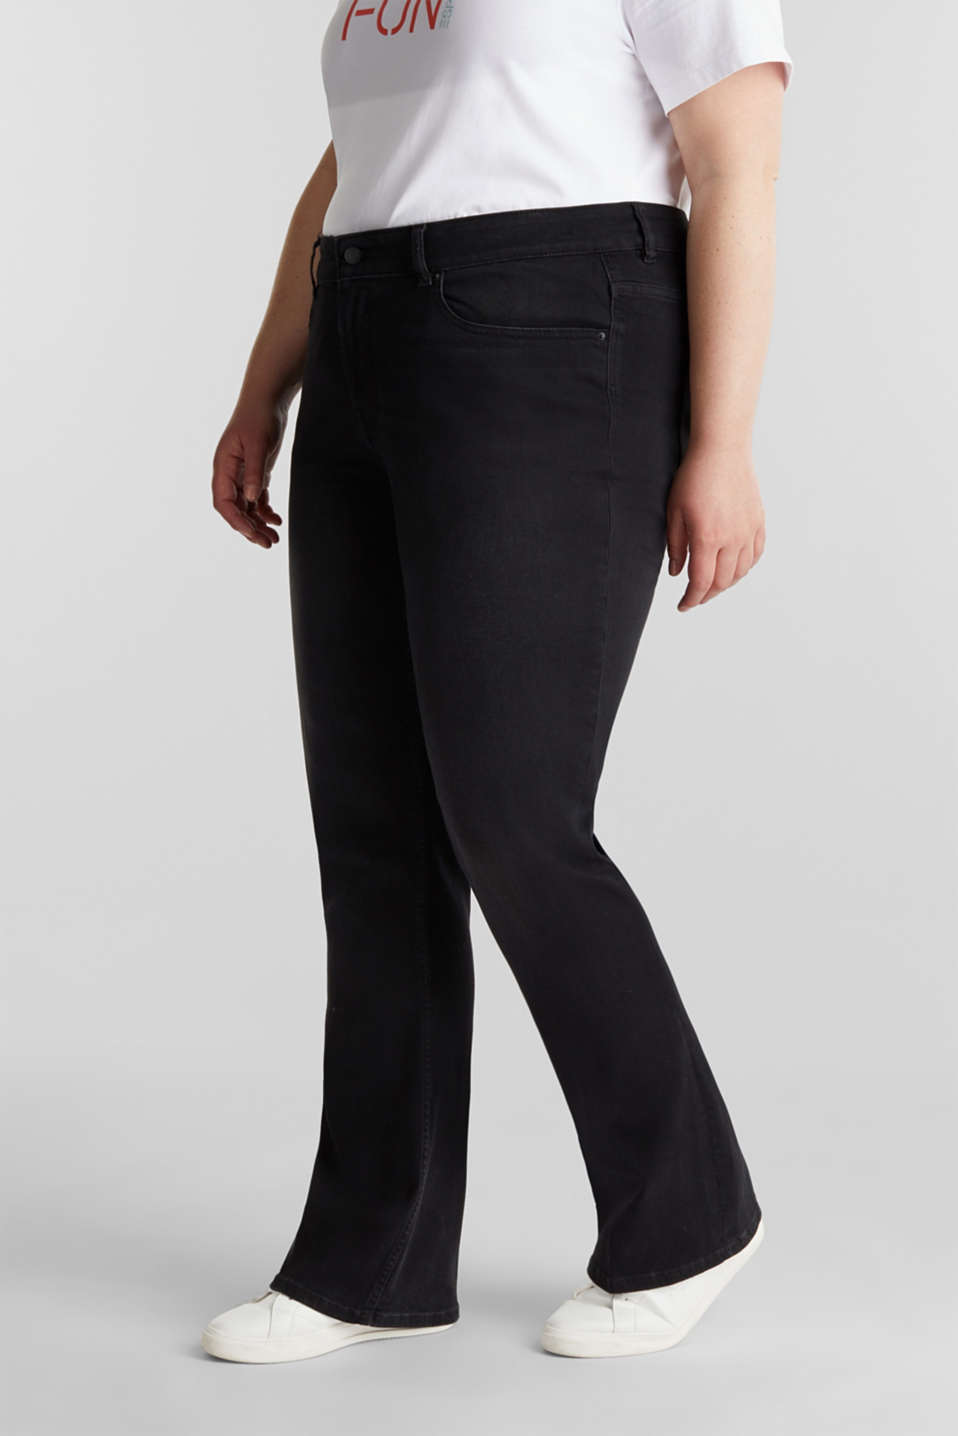 CURVY stretch jeans in a dark wash, BLACK DARK WASH, detail image number 0